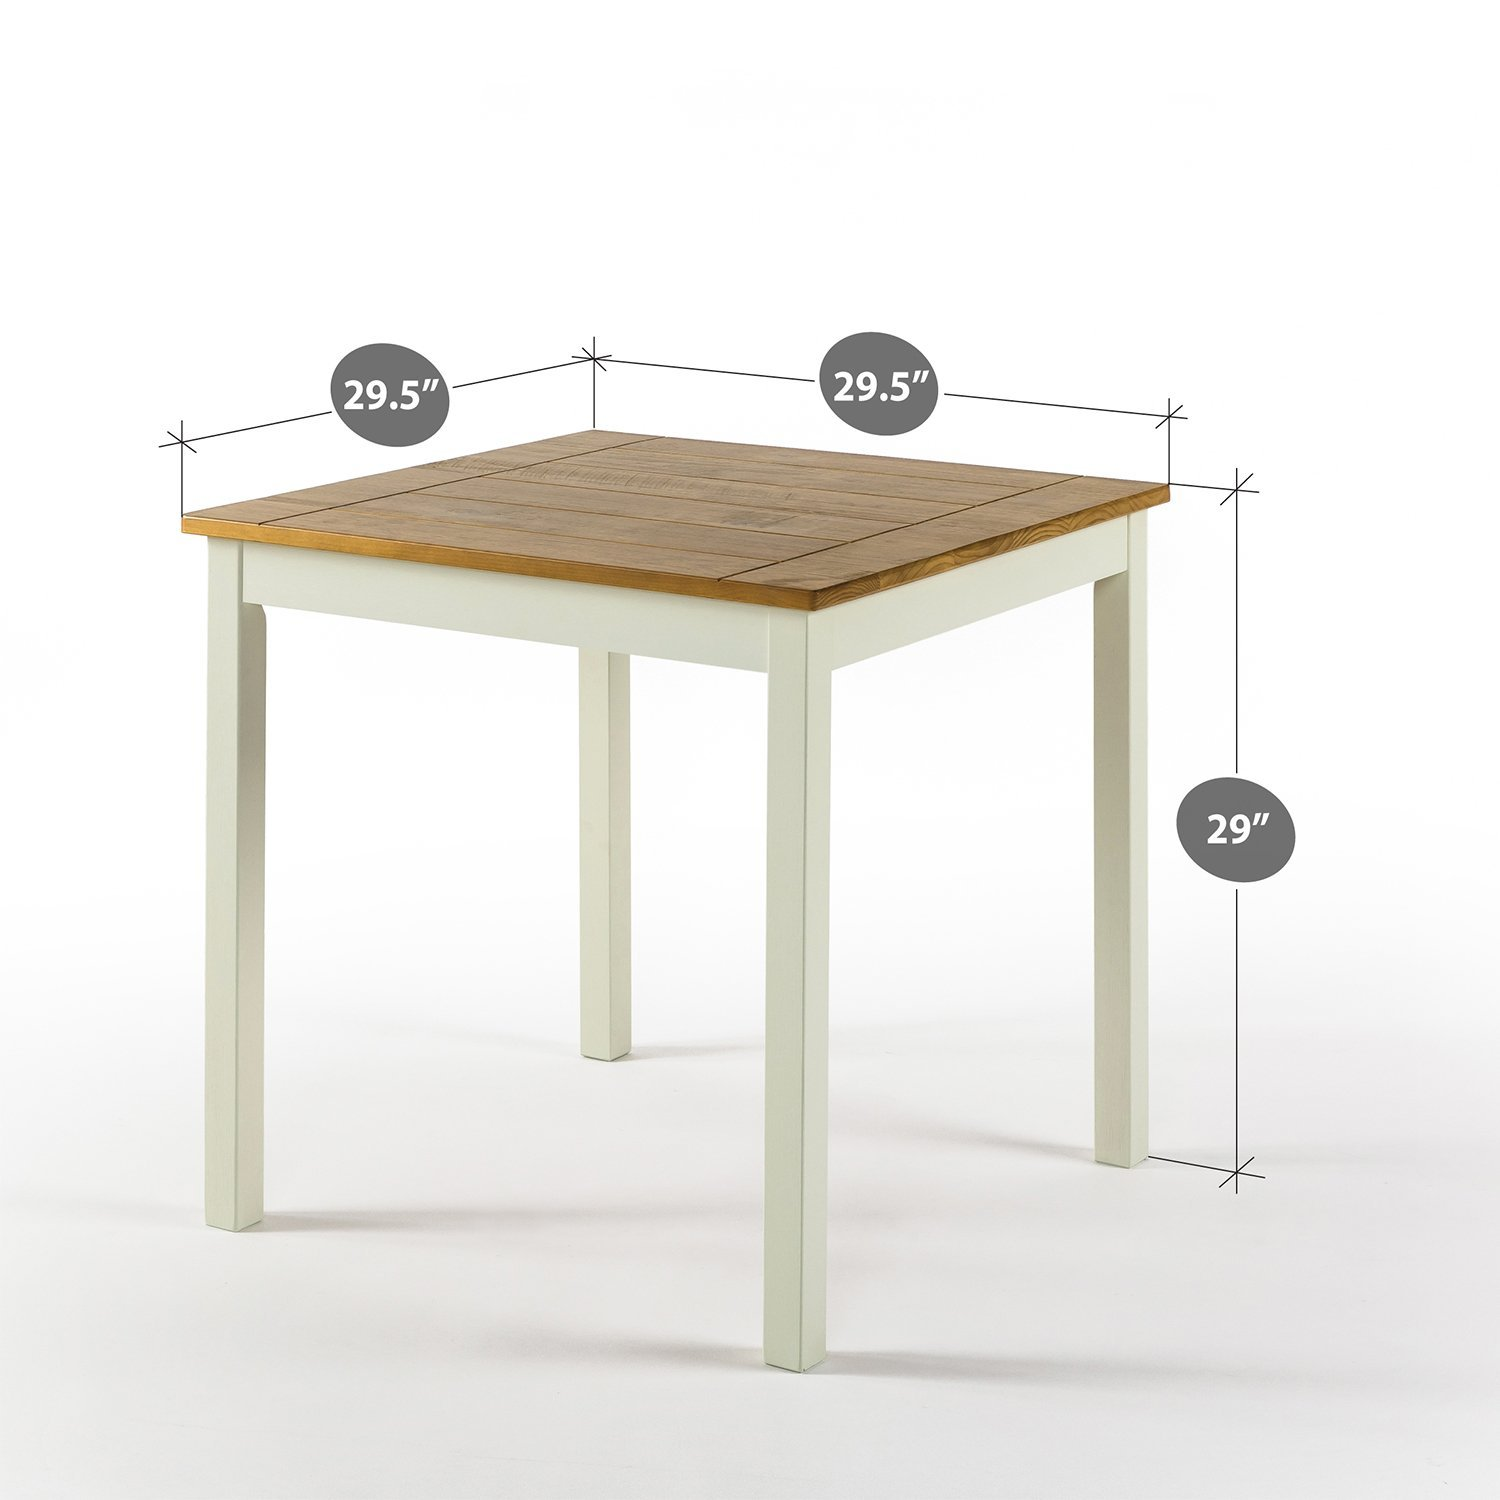 Zinus Farmhouse Square Wood Dining Table by Zinus (Image #3)